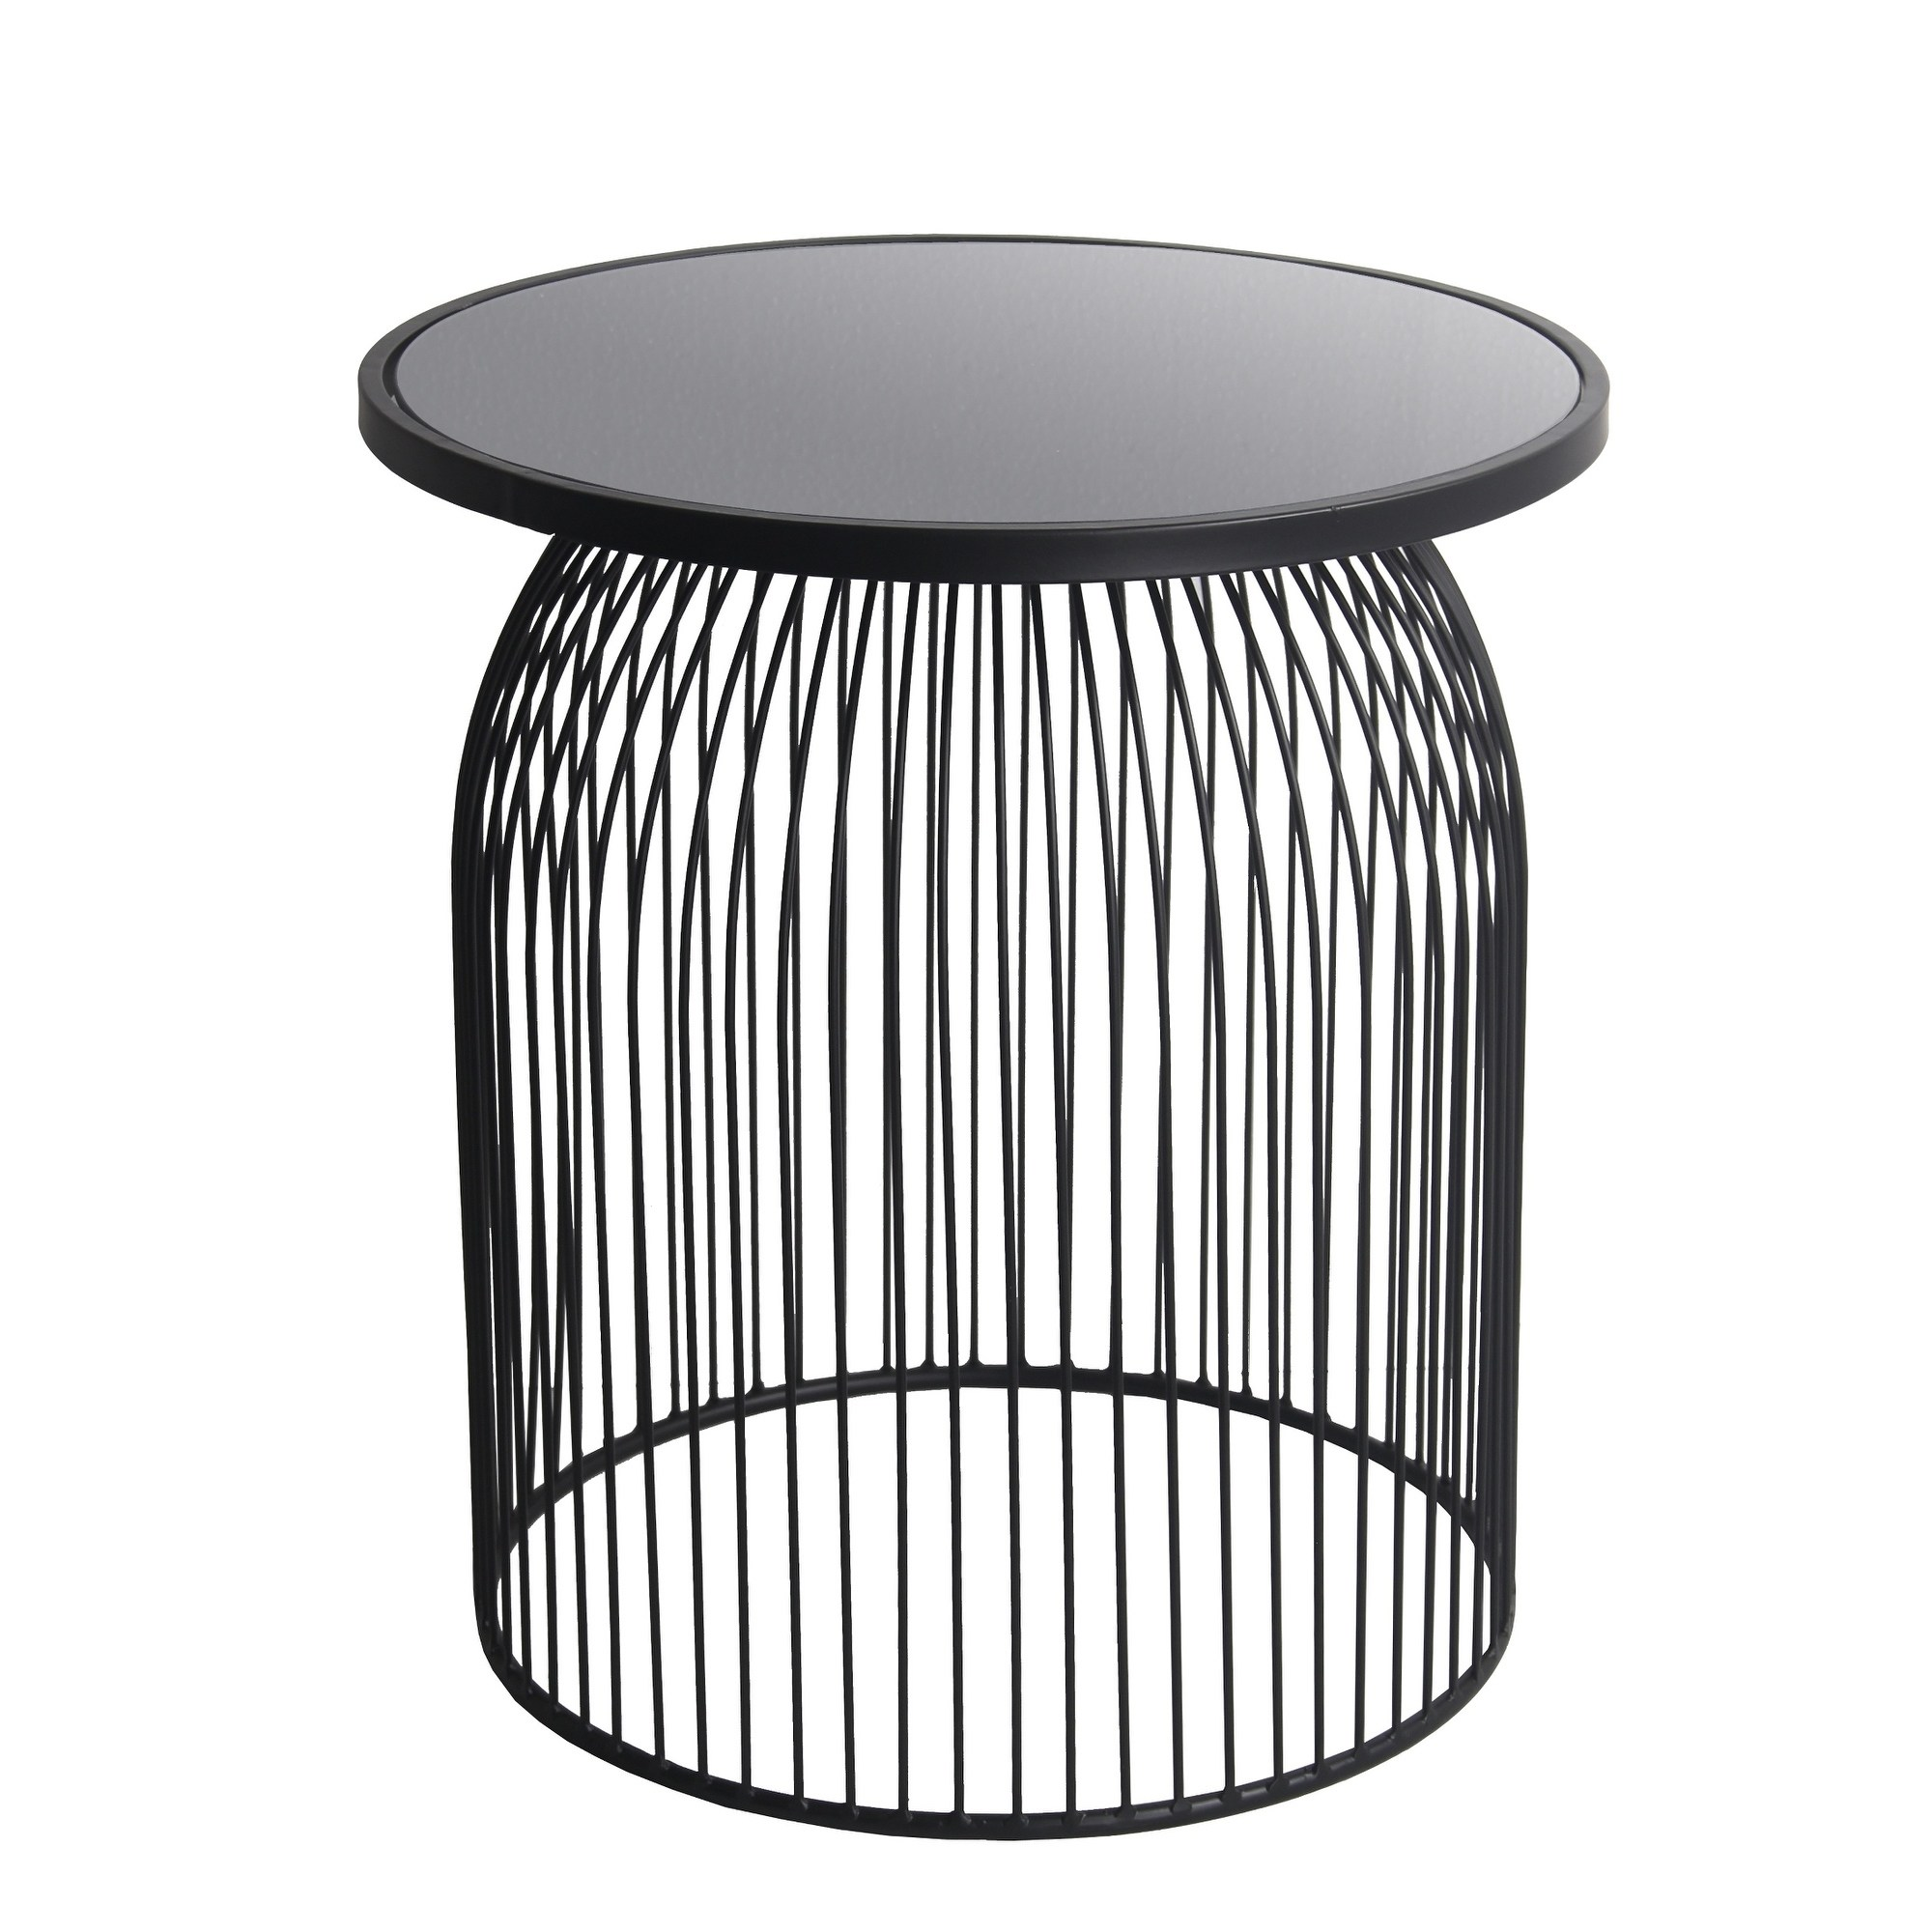 privilege black metal accent table with mirror top free shipping today pulaski display cabinet support leg pottery barn griffin pier one furniture coupons hampton bay wicker patio